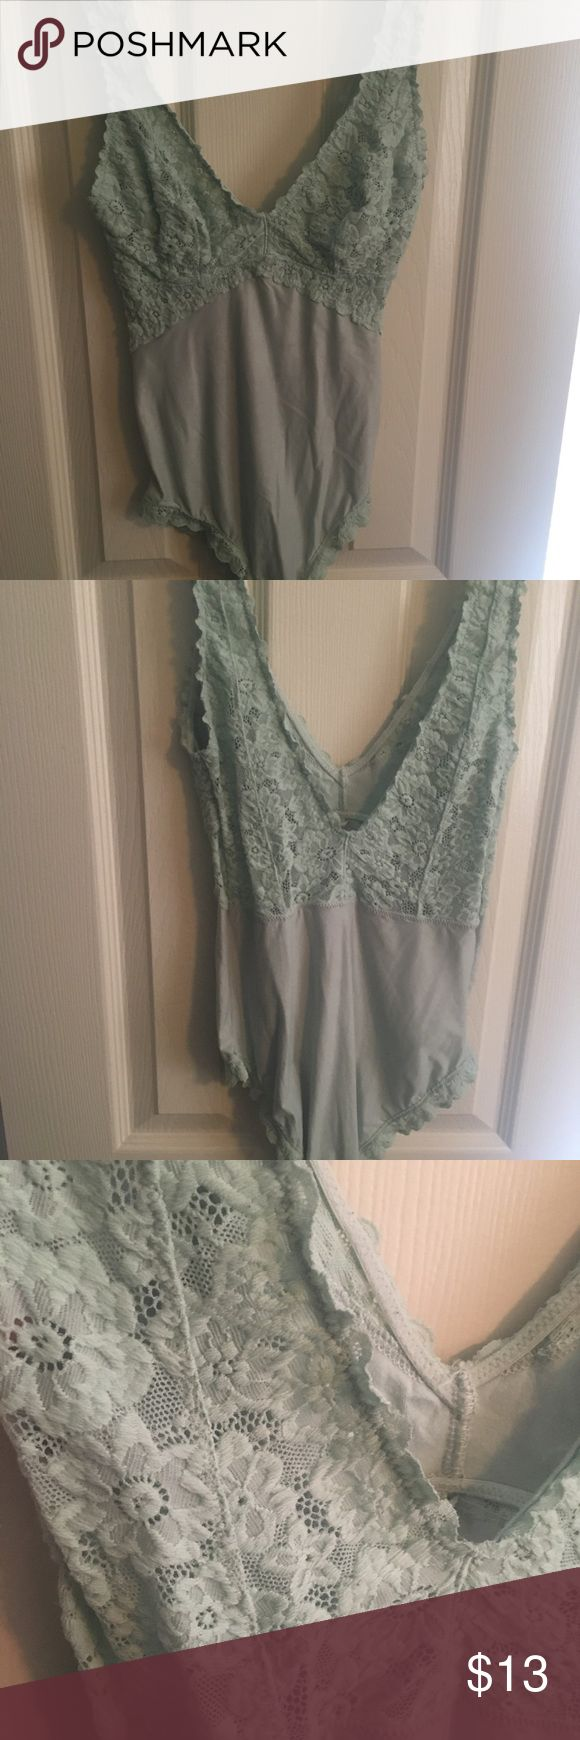 Aerie Mint Green Bodysuit Light and comfortable bodysuit. In good condition. From a pet and smoke free home. Make me an offer! aerie Tops